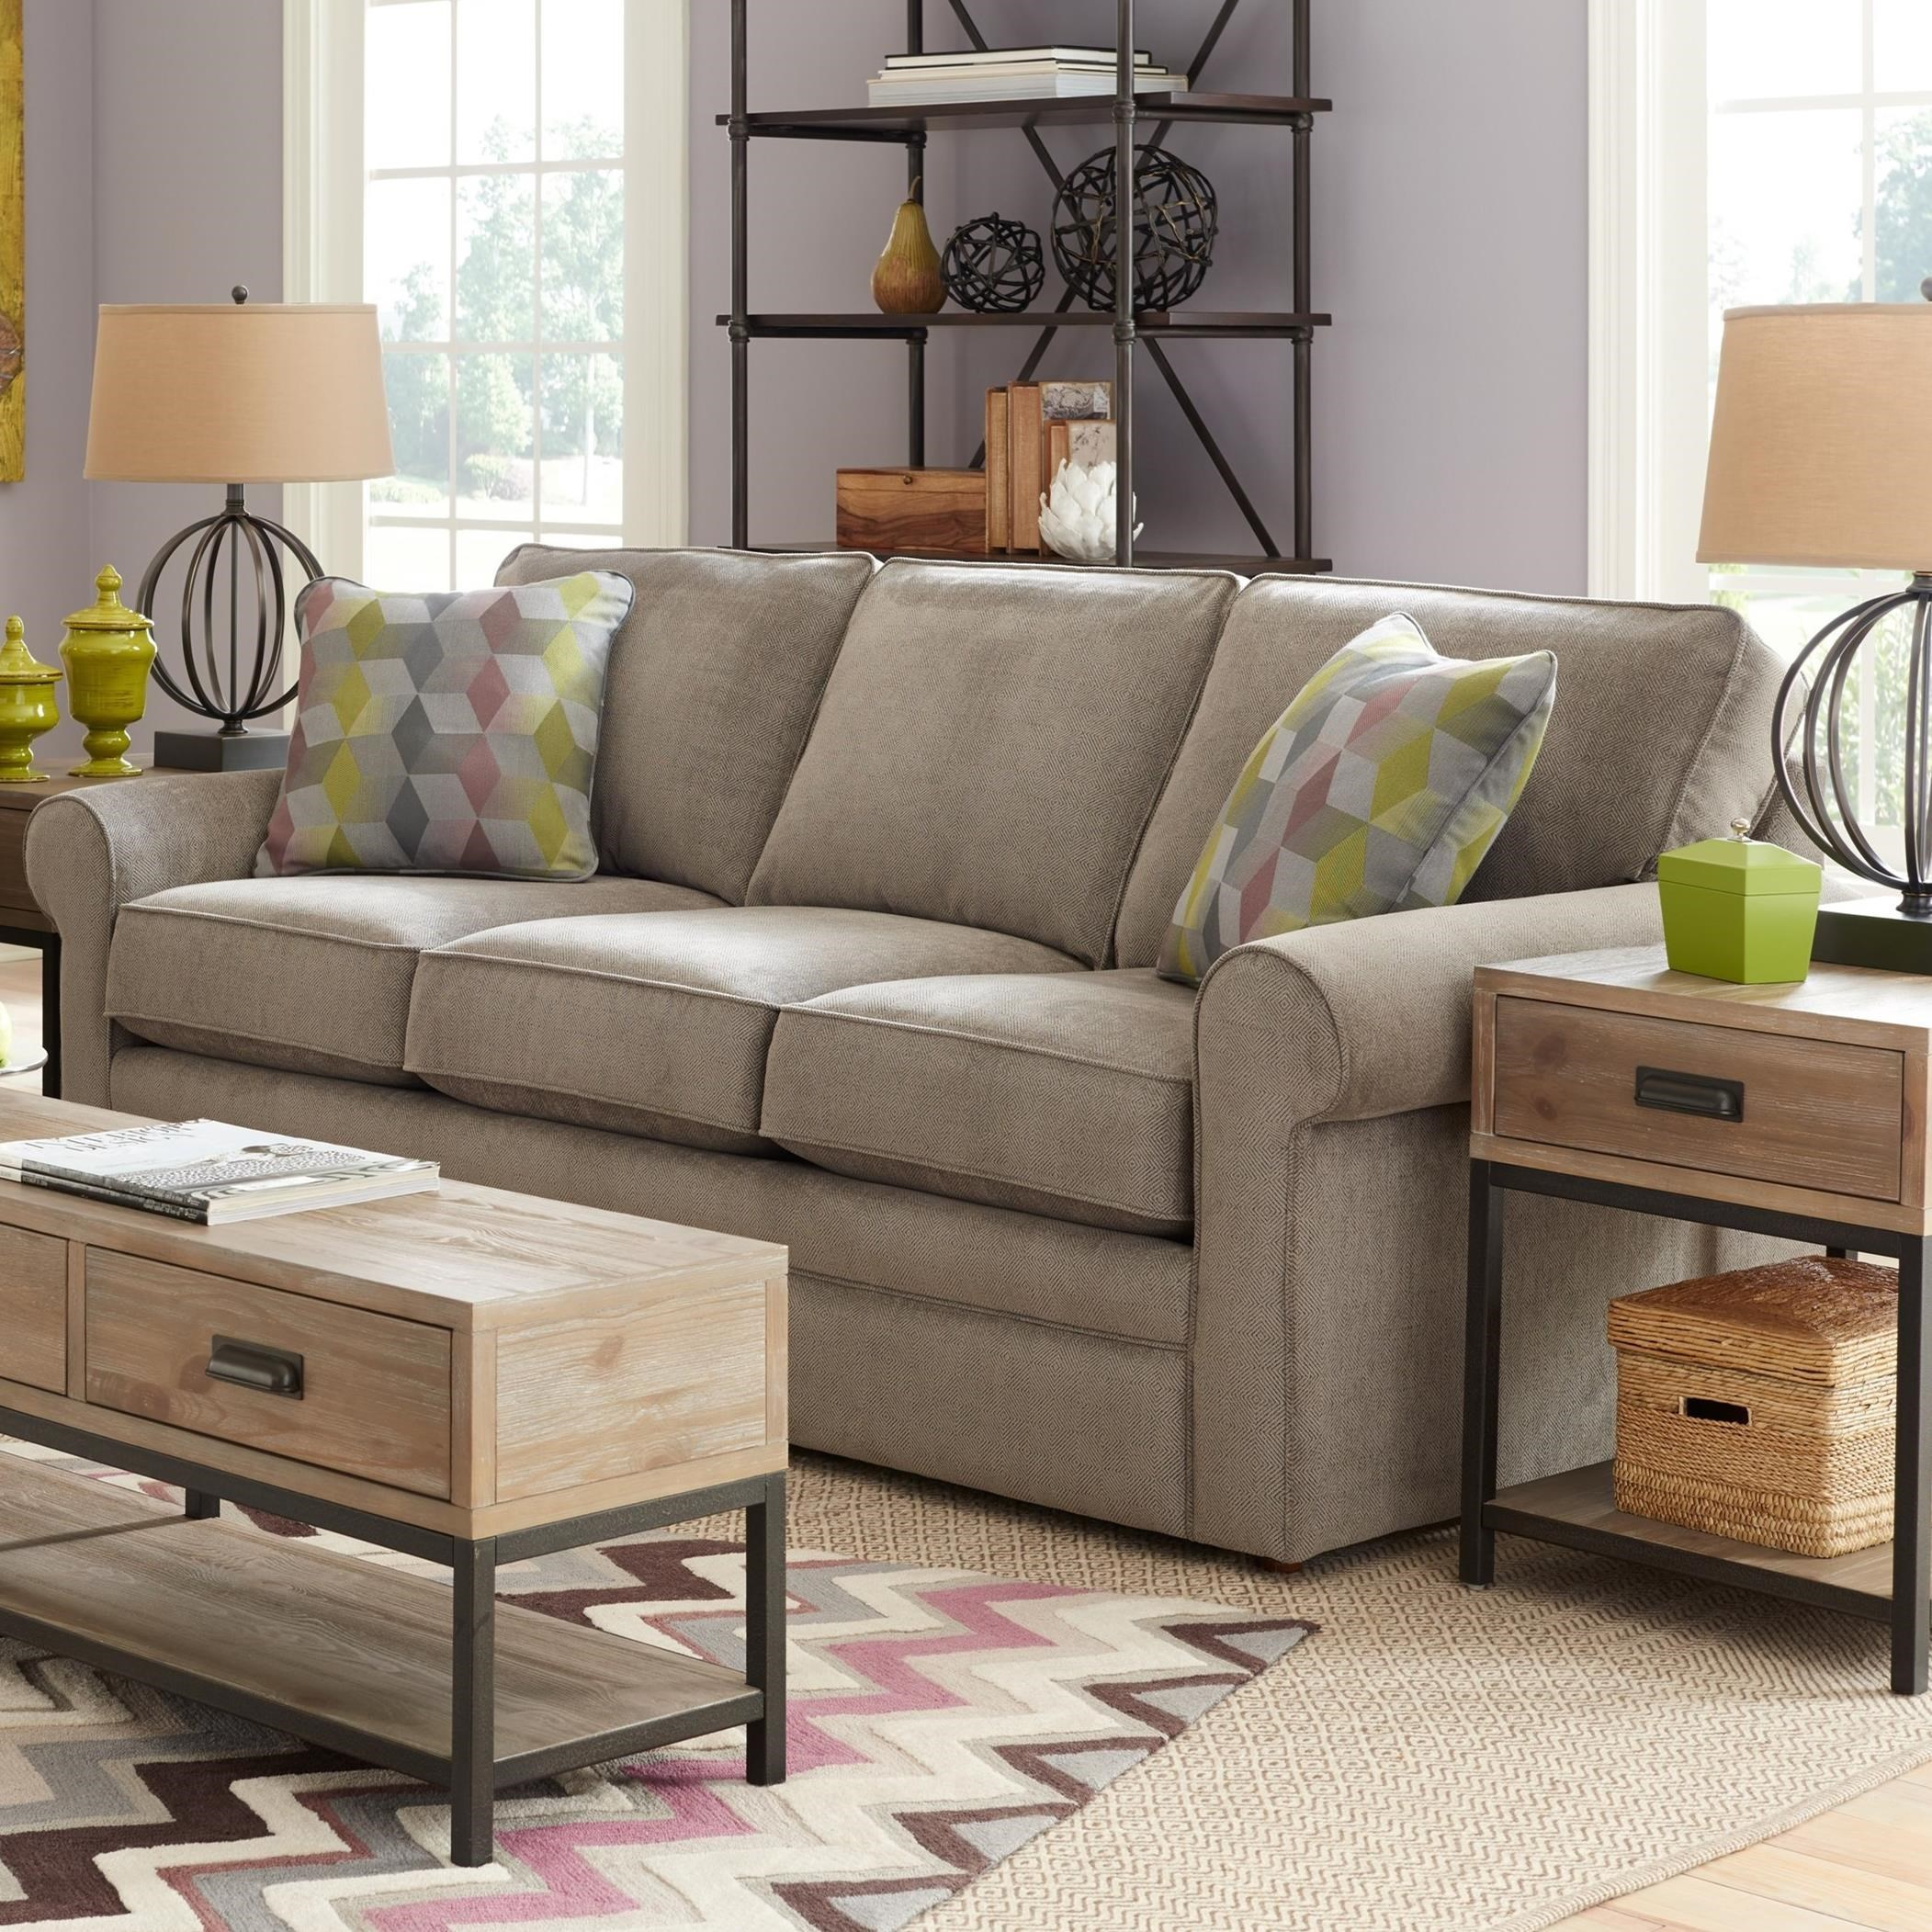 lazy boy leather living room furniture how to decorate a small apt la z collins sofa with rolled arms reid s sofas